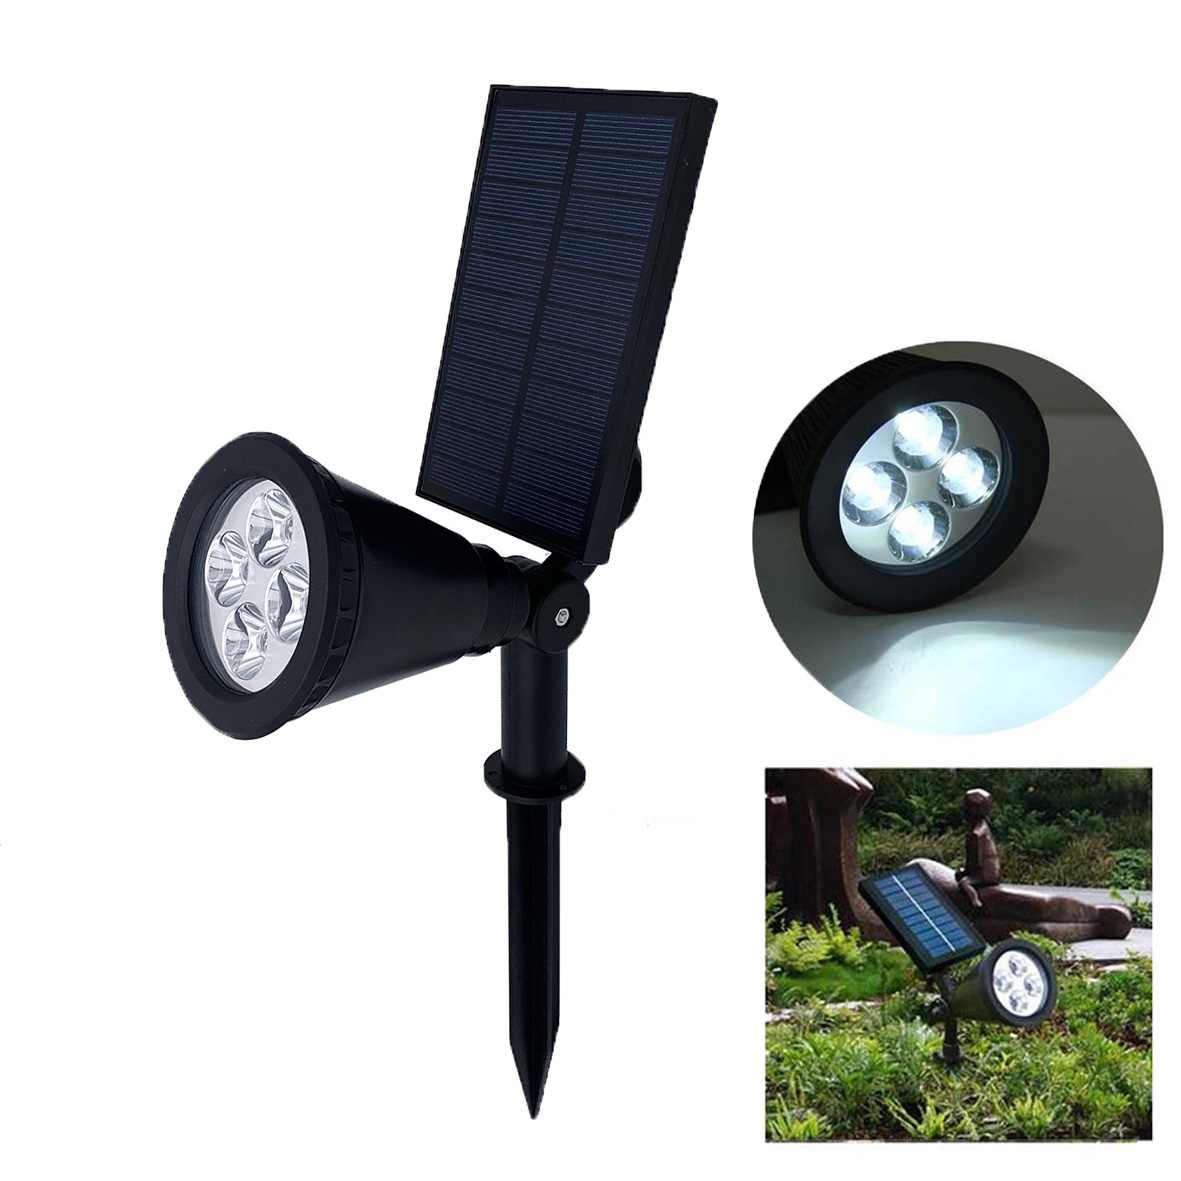 LED spotlight spike 5W lighting outdoor garden F101-5W